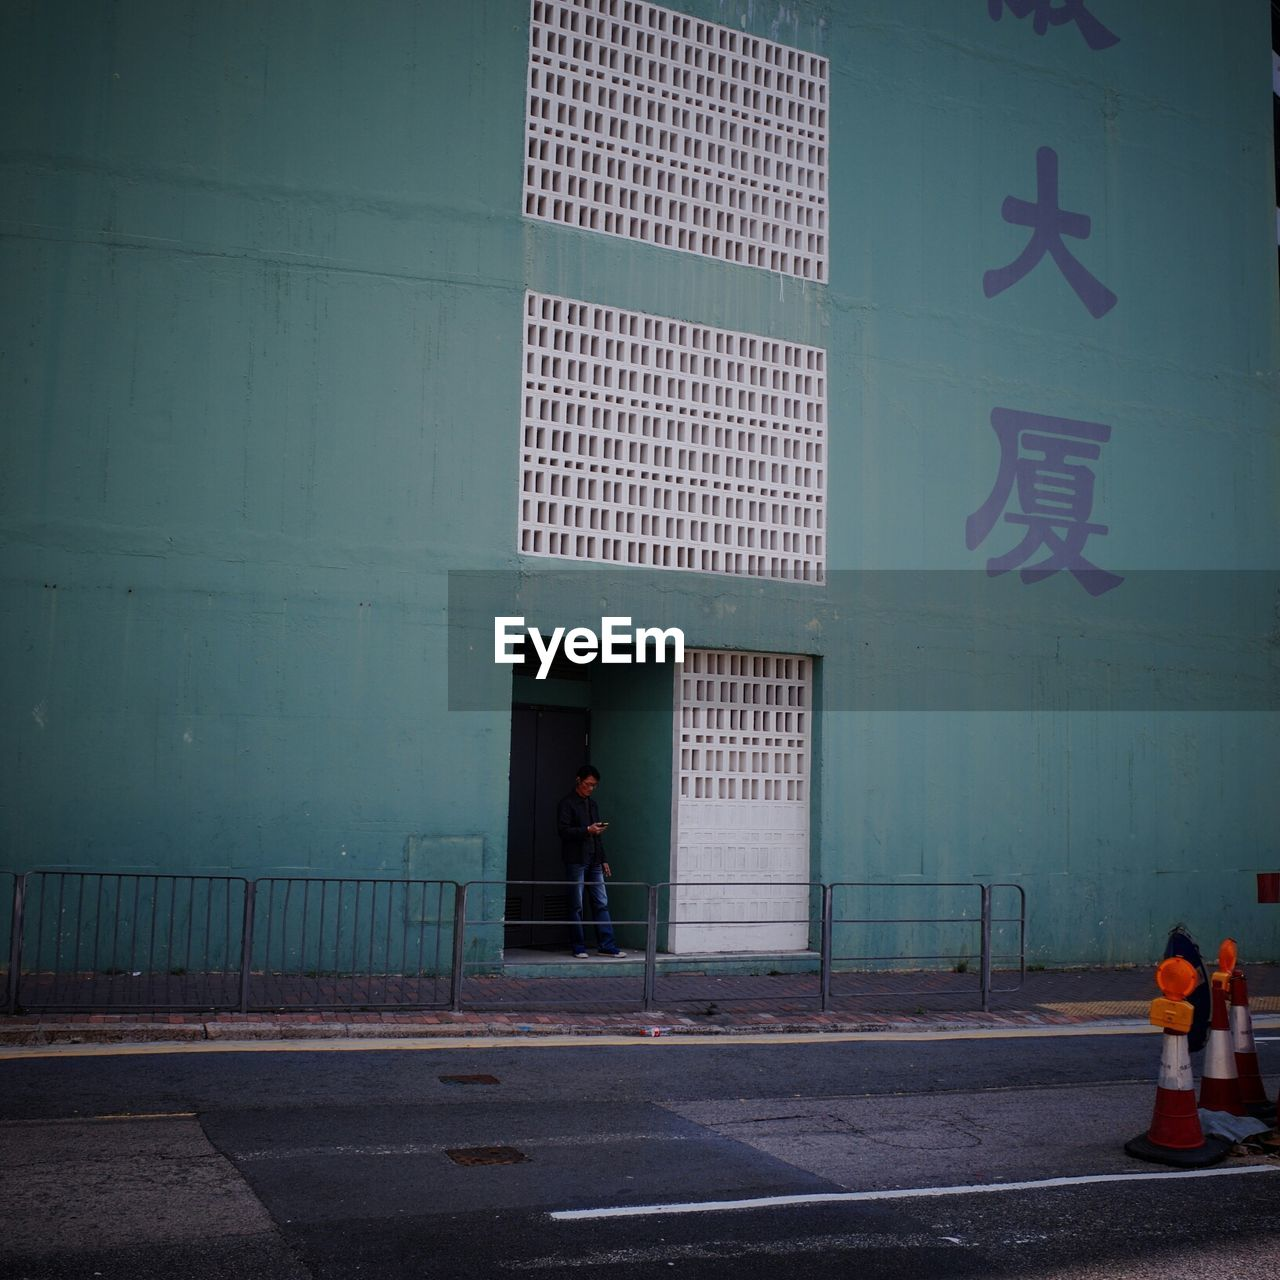 Man reading message on phone at entrance of building